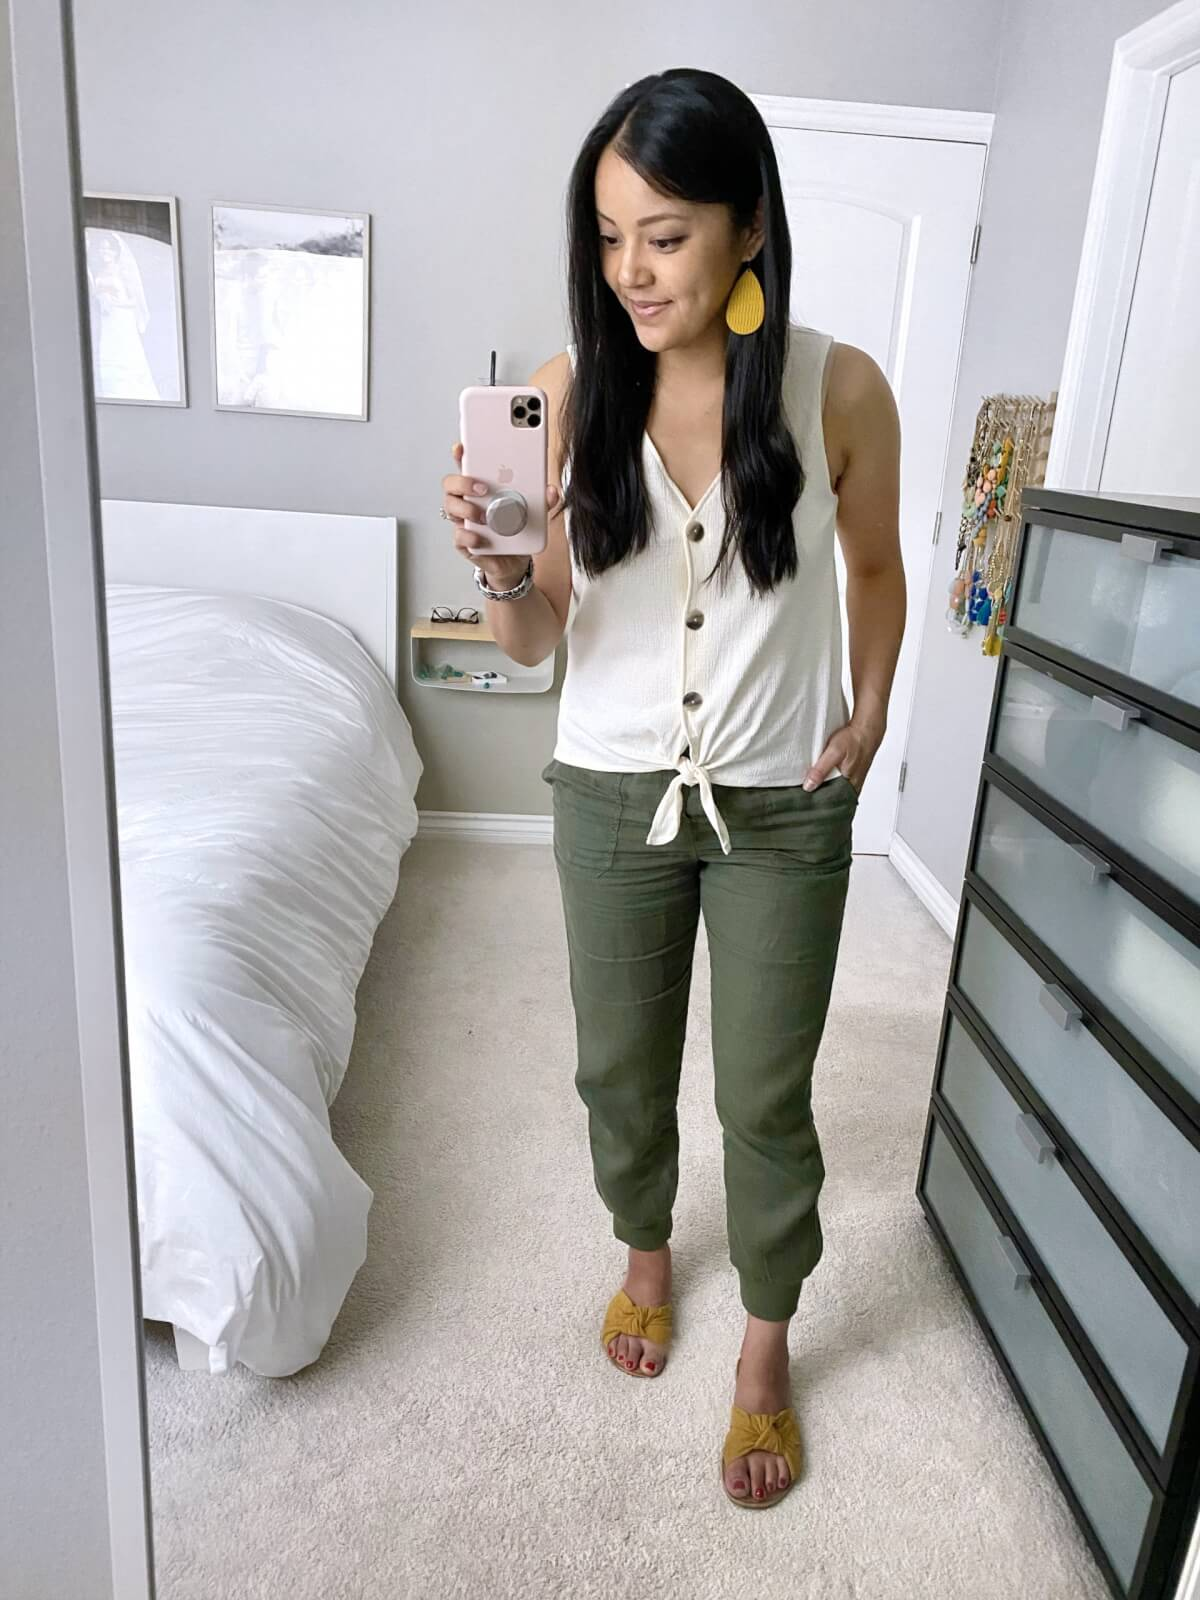 Summer Pants Casual Outfit: Caslon olive linen pants + white button up tank + yellow earrings + yellow slide sandals